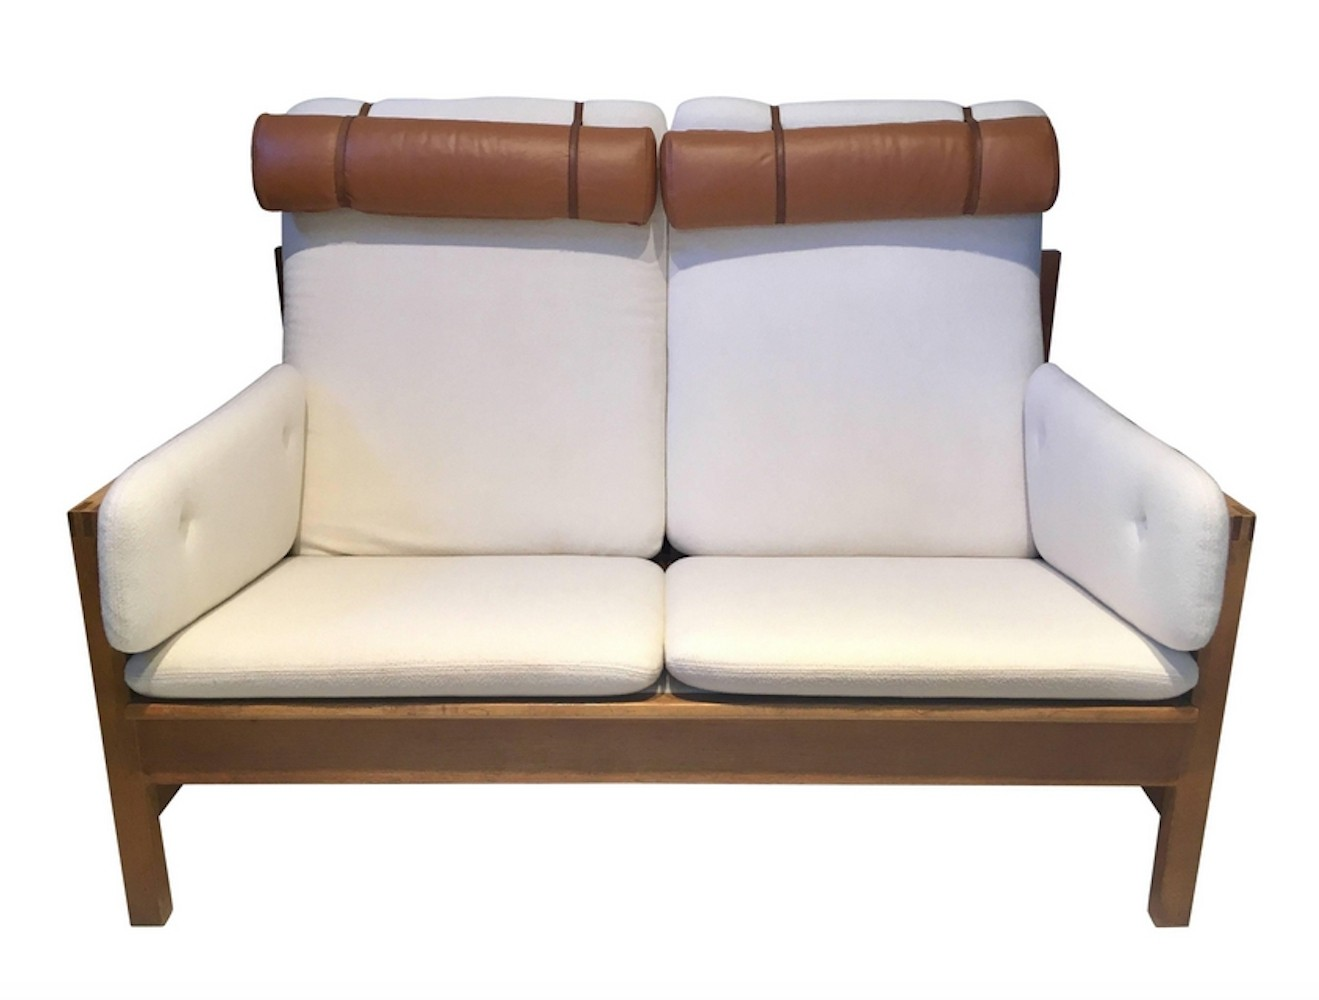 Borge Mogensen Two-Seat Oak Sofa, Model 2252